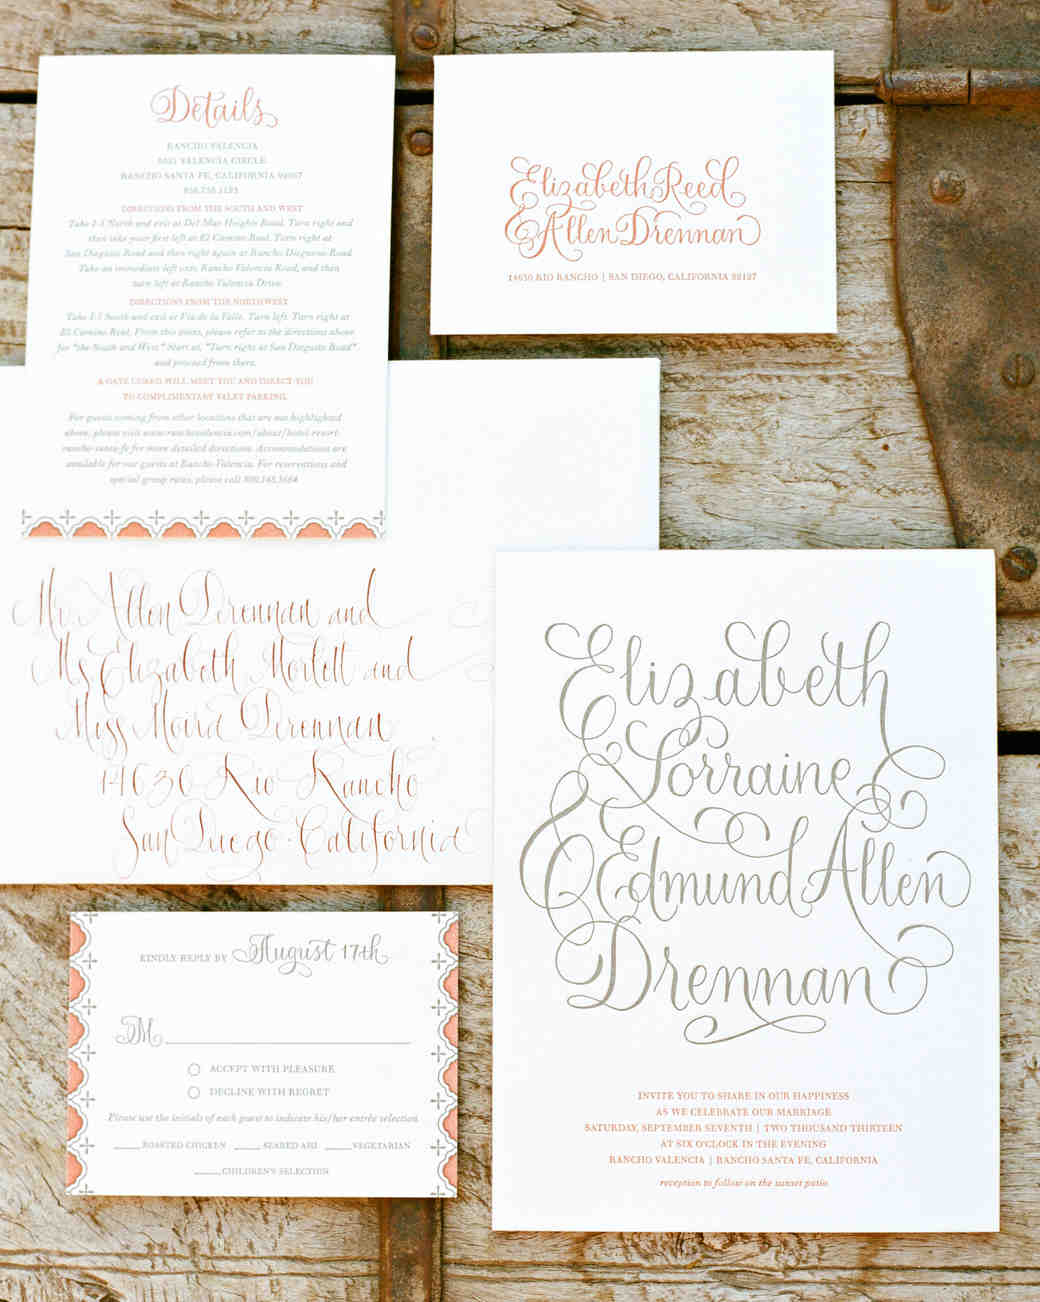 liz allen wedding invite 0007 s111494 0914_vert?itok=OrHfpzNH 10 things you should know before mailing your wedding invitations,Stuffing Wedding Invitations